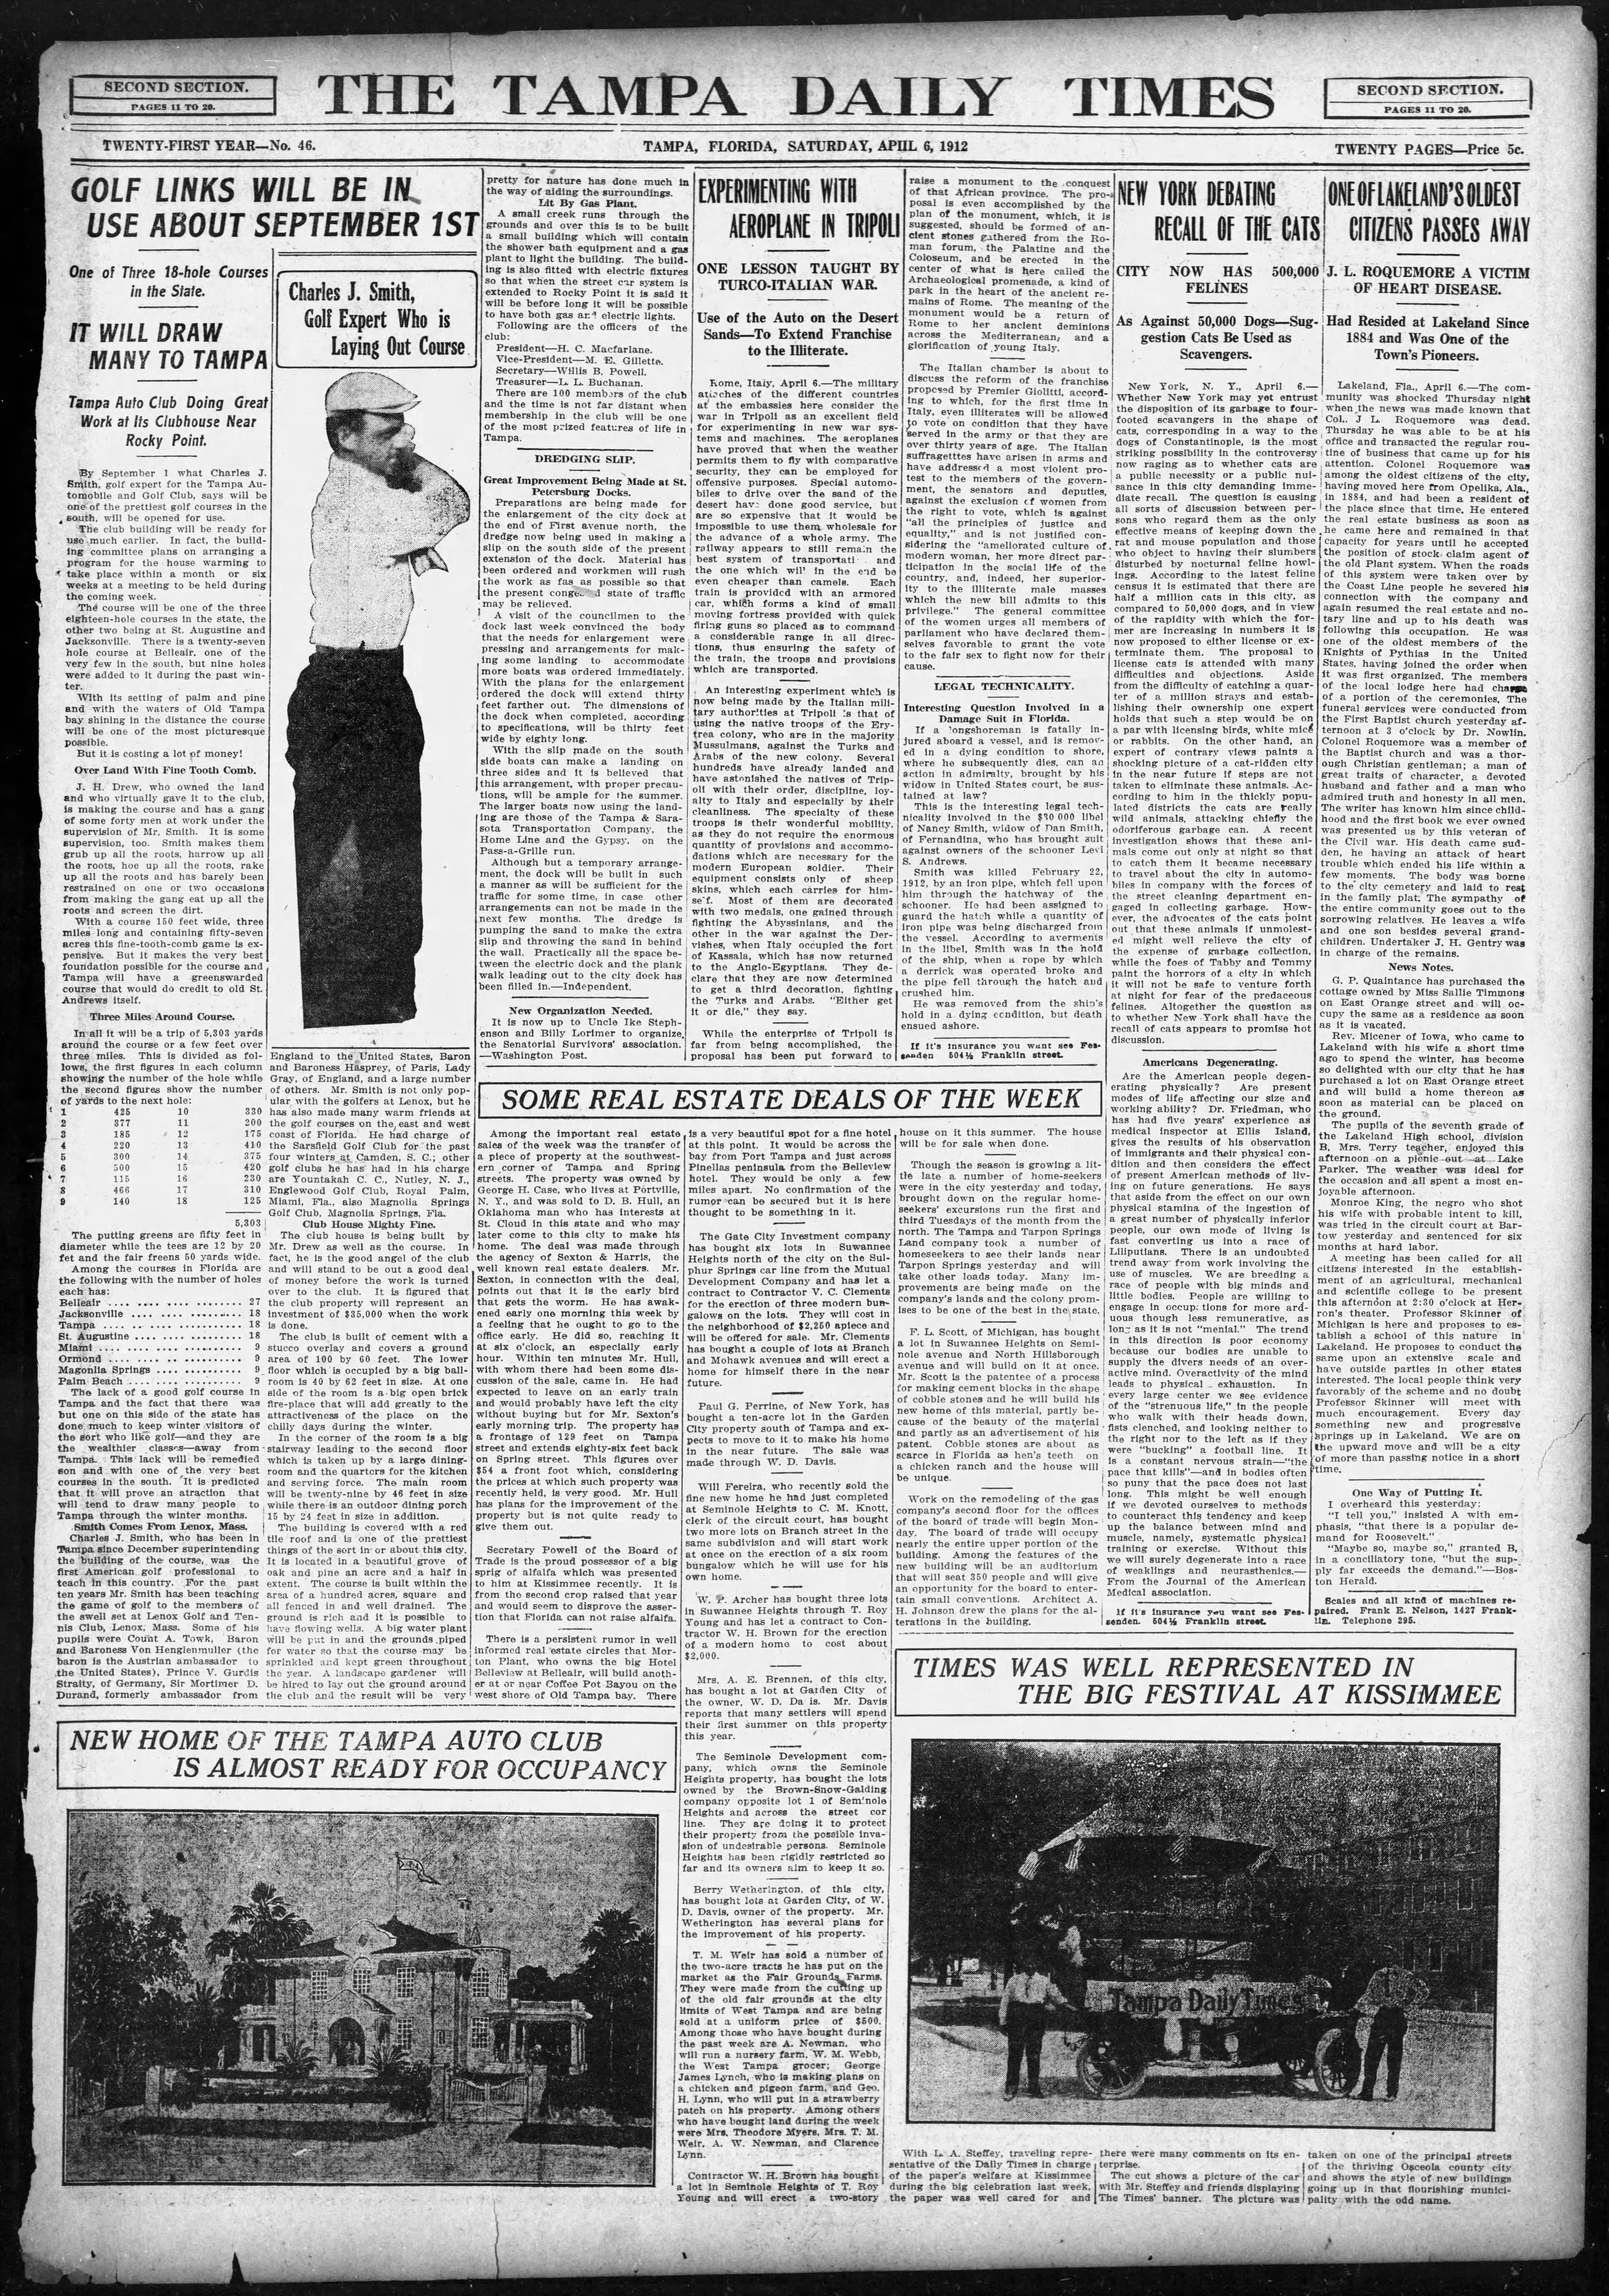 Golf links will be in use about Sept. 1st - Apr 6, 1912 Tampa Times